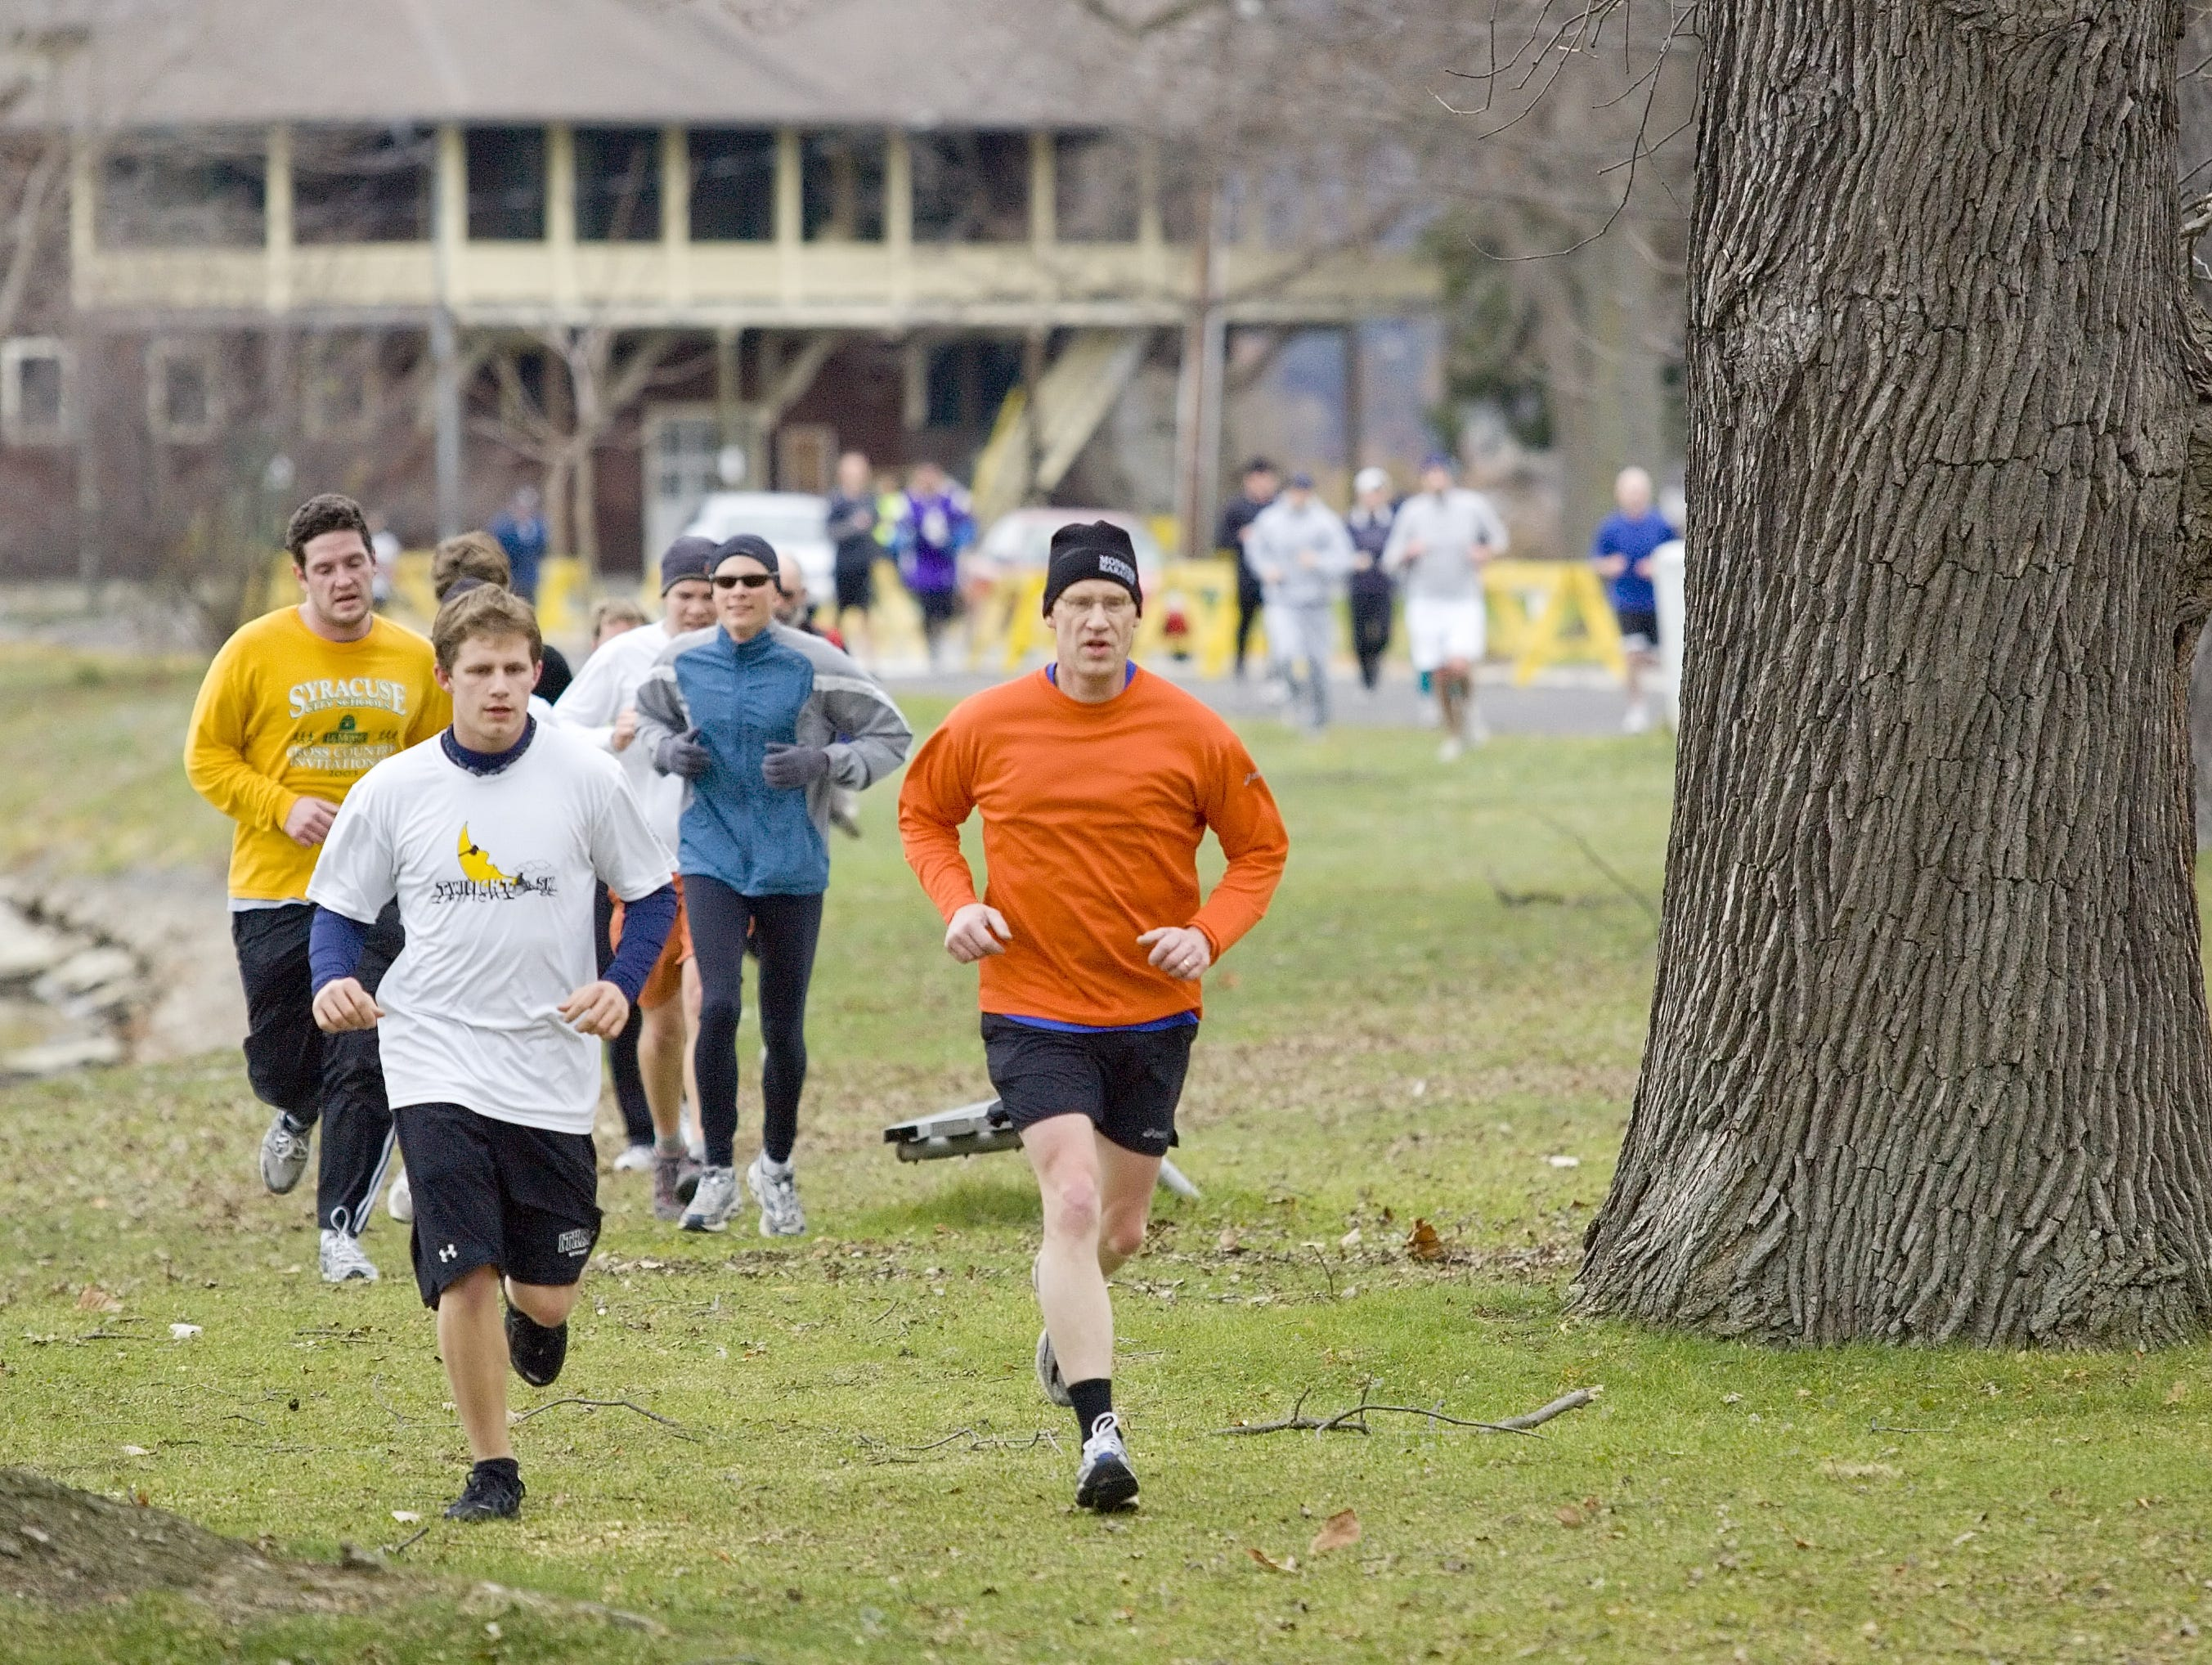 Runners make their way across Stewart Park during the 2010 Turkey Trot. The annual event is held Thanksgiving morning. Runners are encouraged to bring canned food that will be donated to Loaves and Fishes.